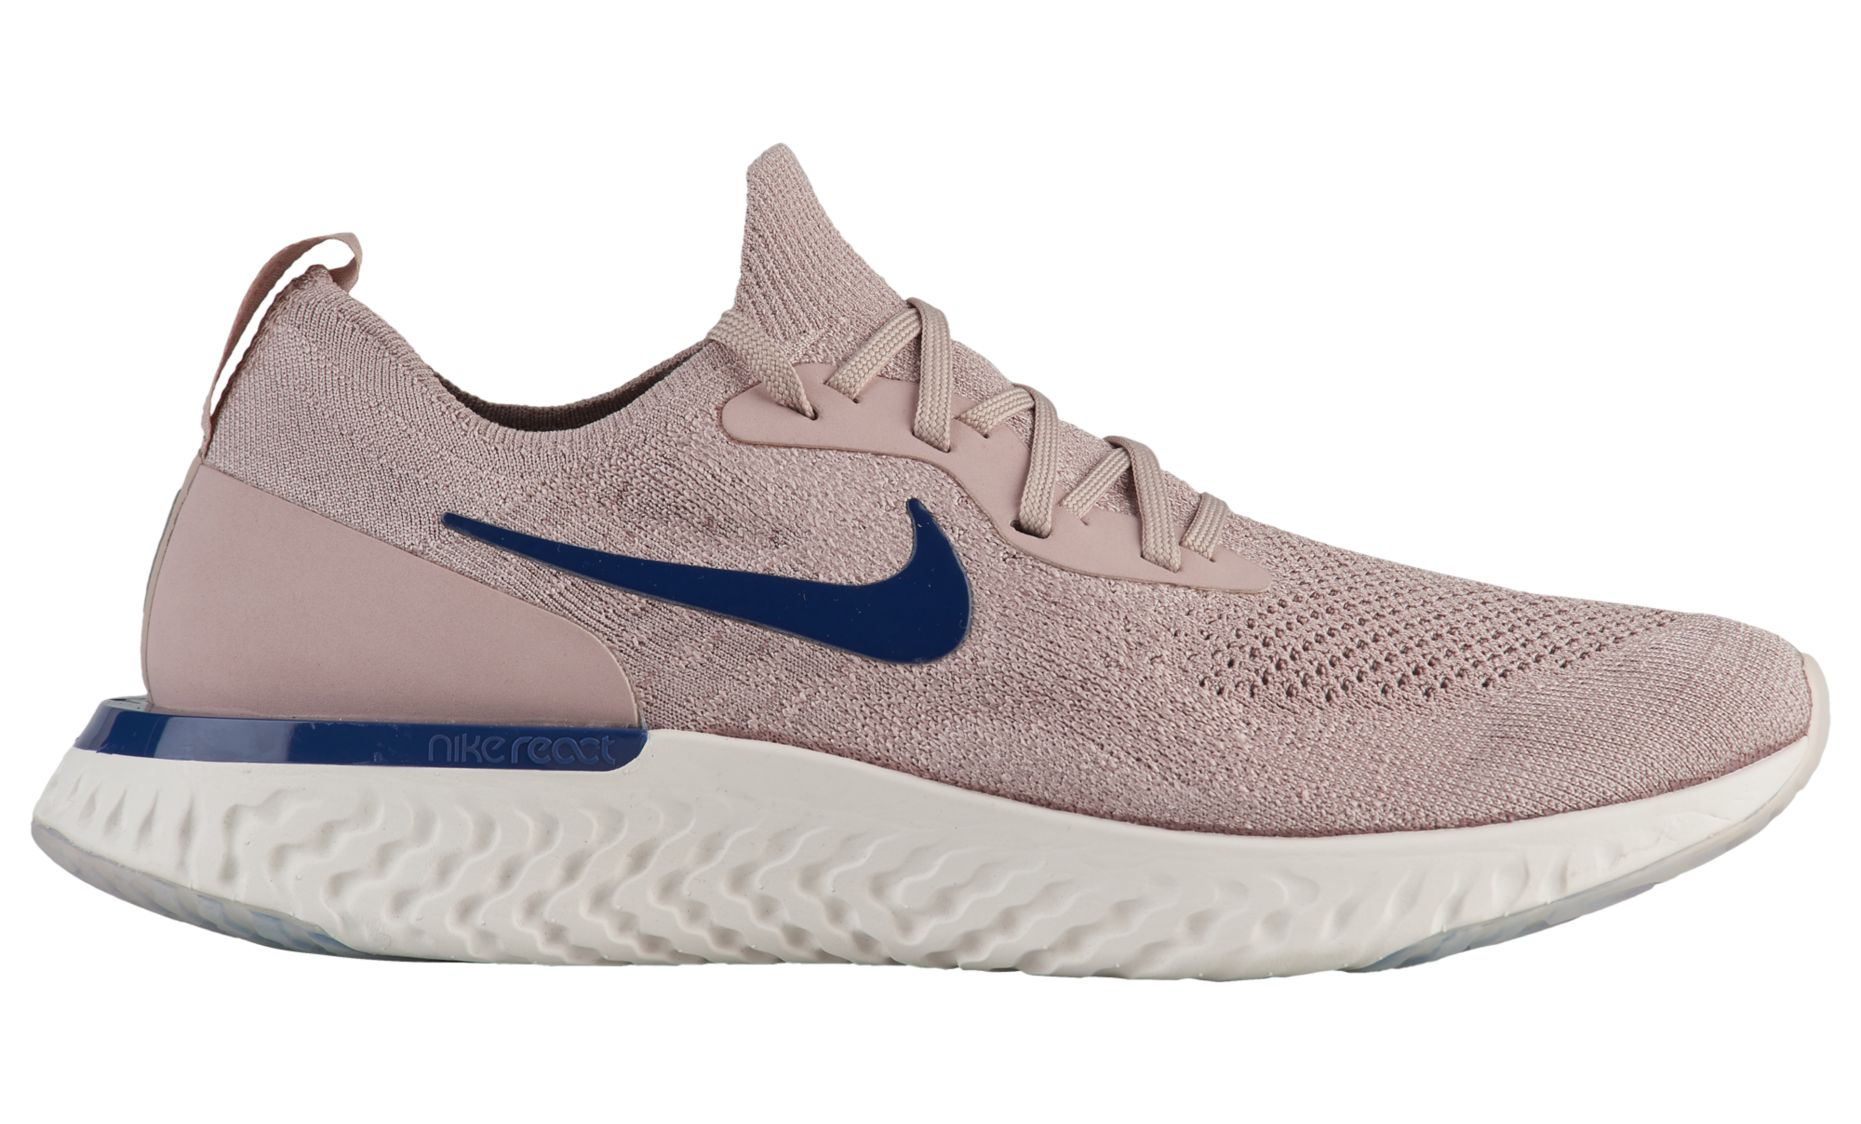 NIKE EPIC REACT FLYKNIT DIFFUSED TAUPE : BLUE VOID – PHANTOM 2